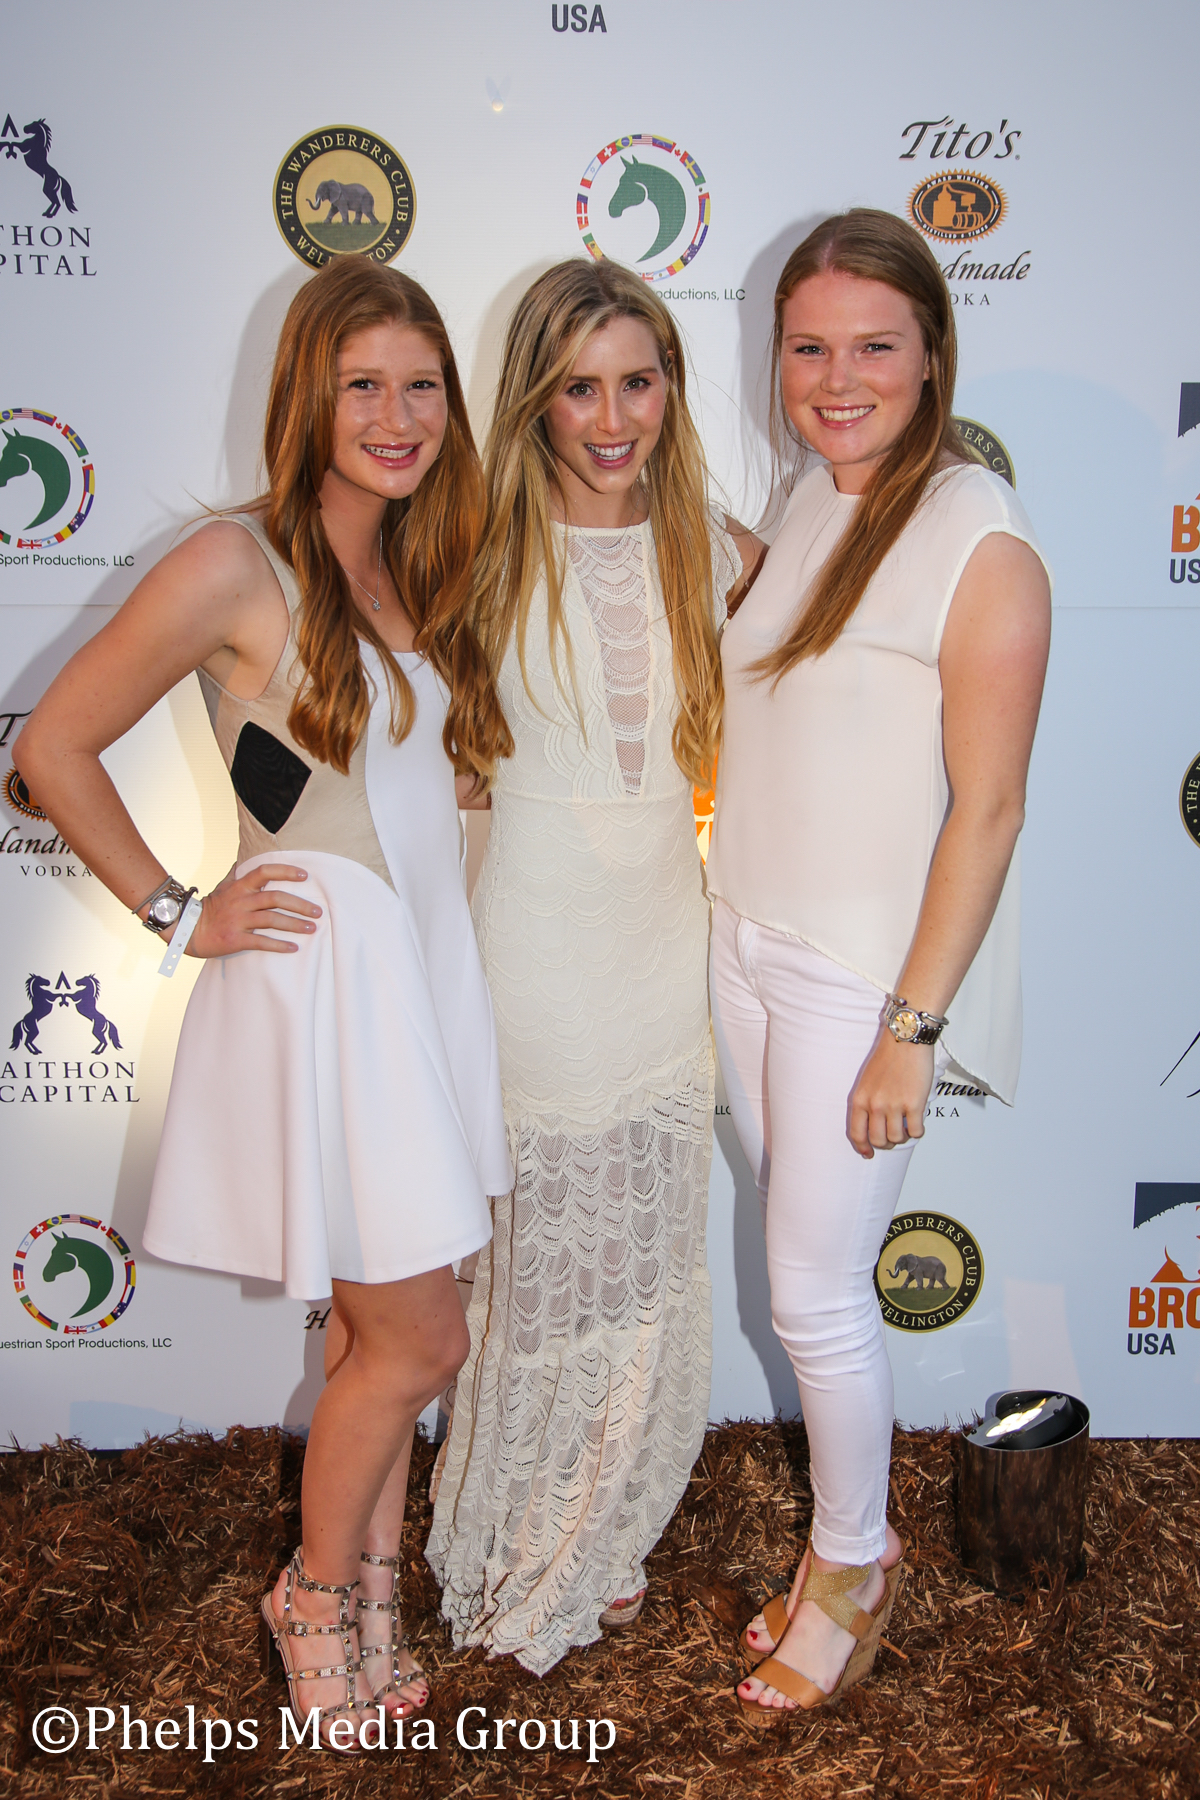 Jennifer Gates Paige Bellissimo and Taylor Alexander; Nic Roldan's 2nd Annual Sunset Polo & White Party, FL, by Phelps Media (1).jpg